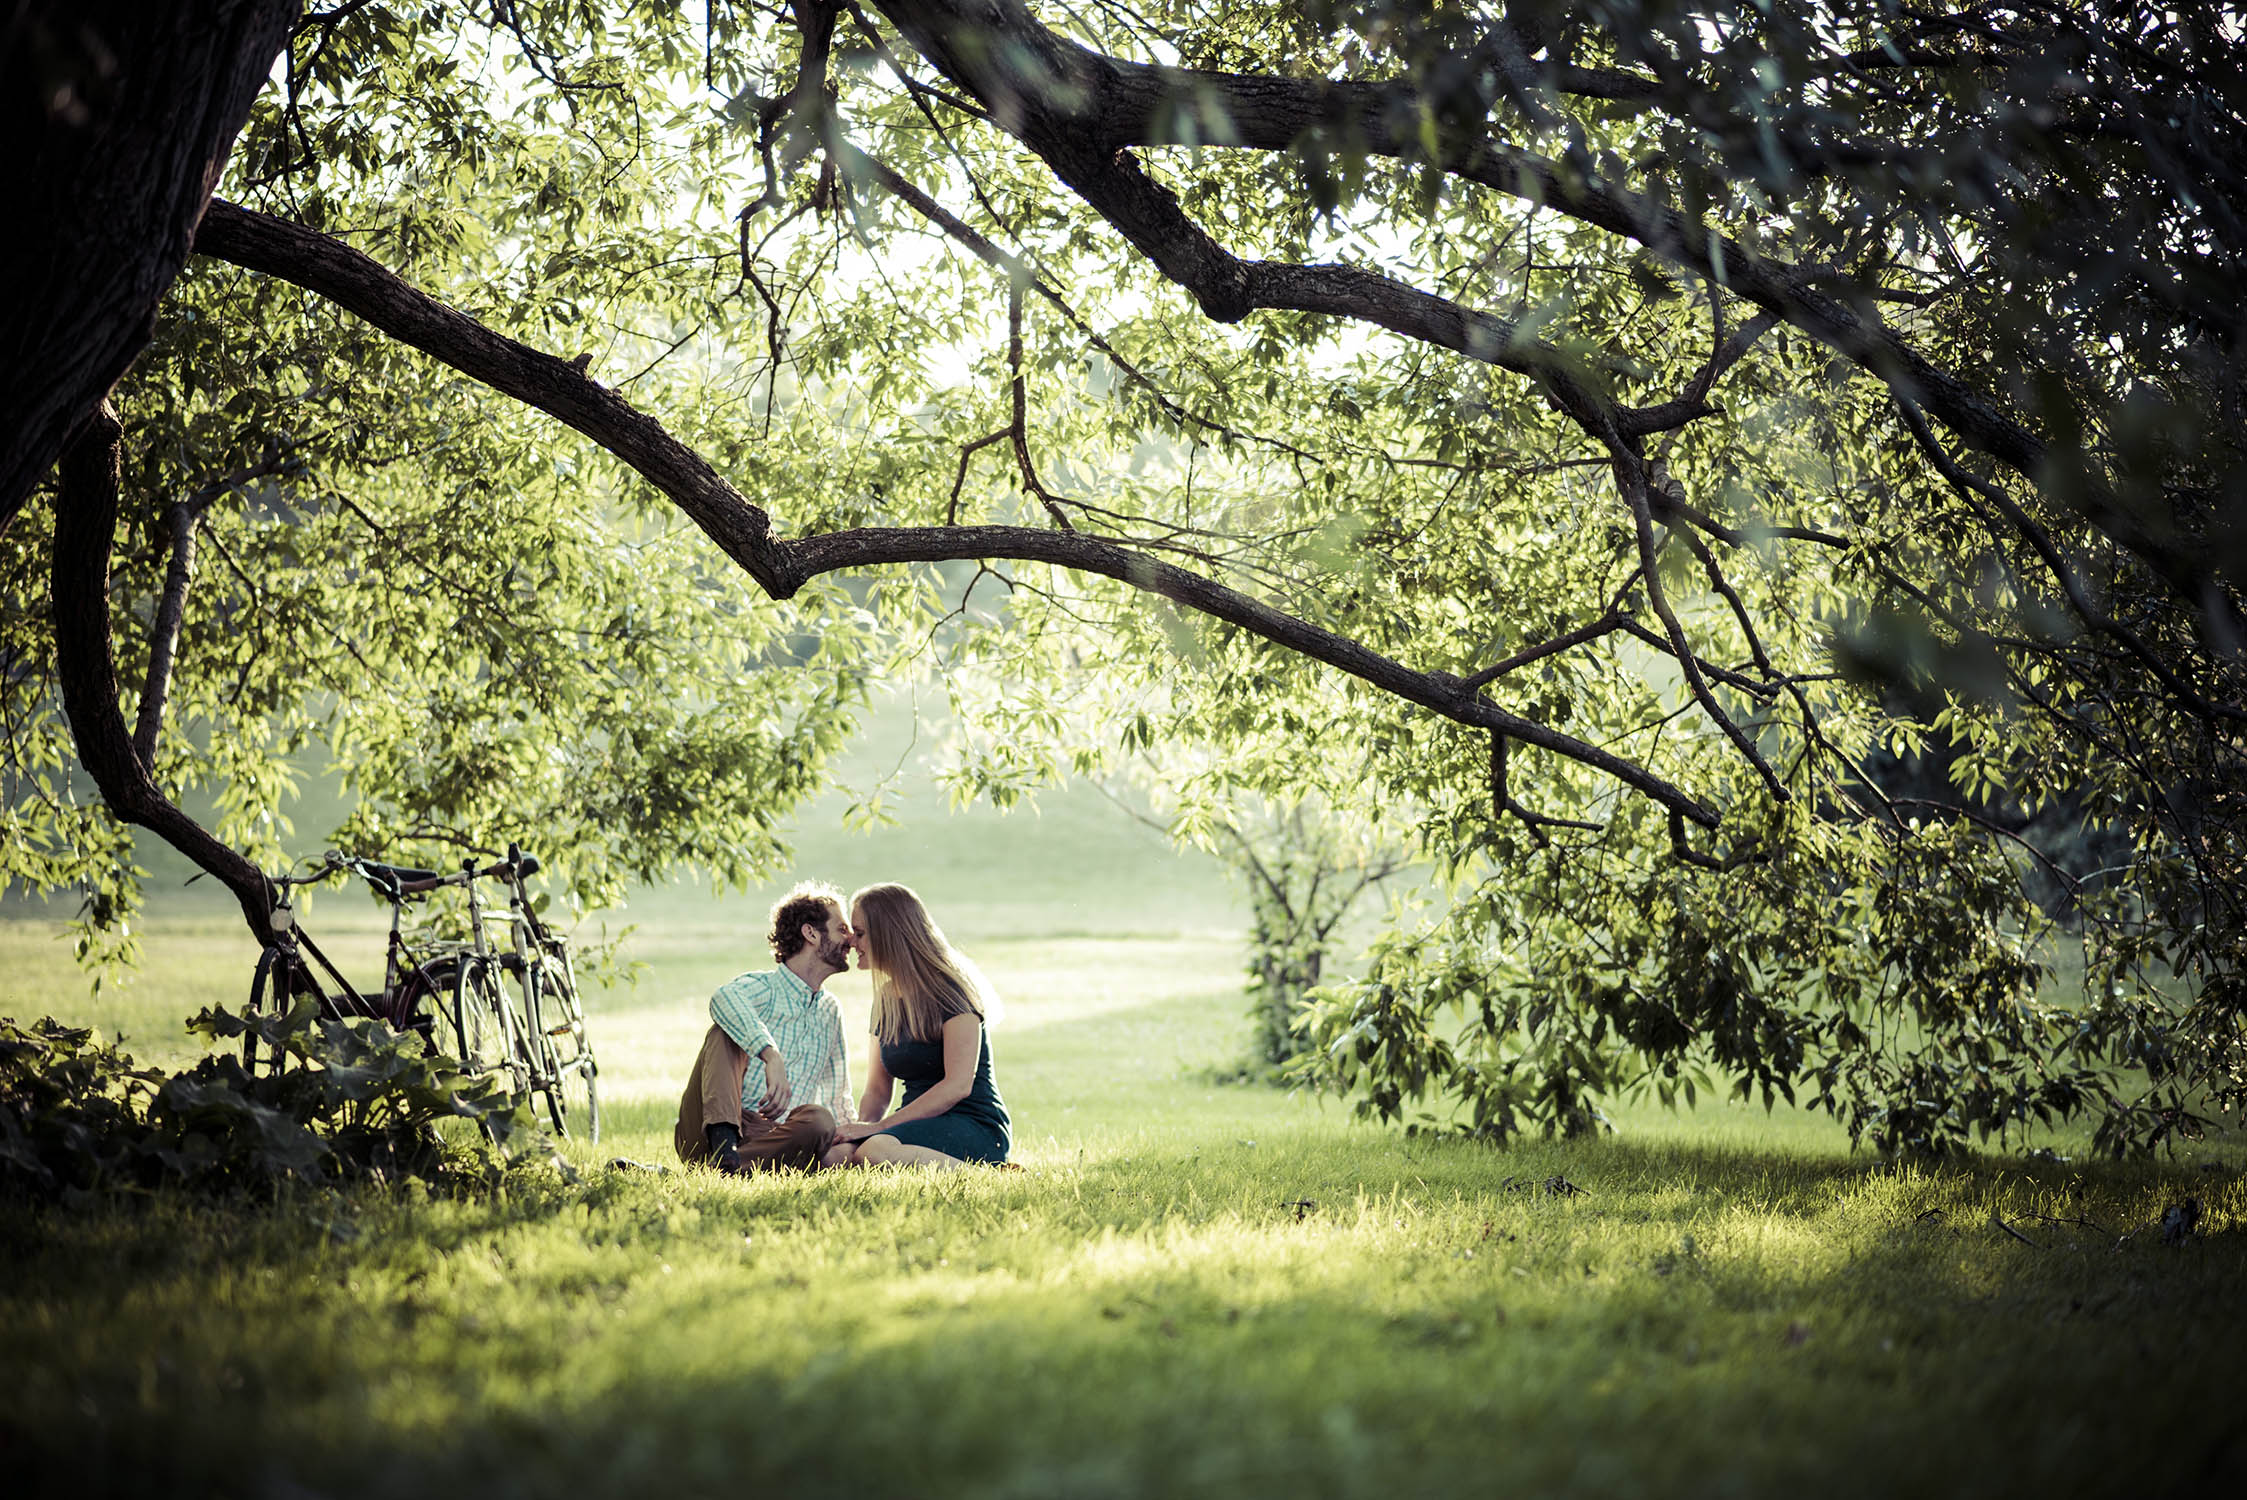 arboretum-engagement-photography.jpg